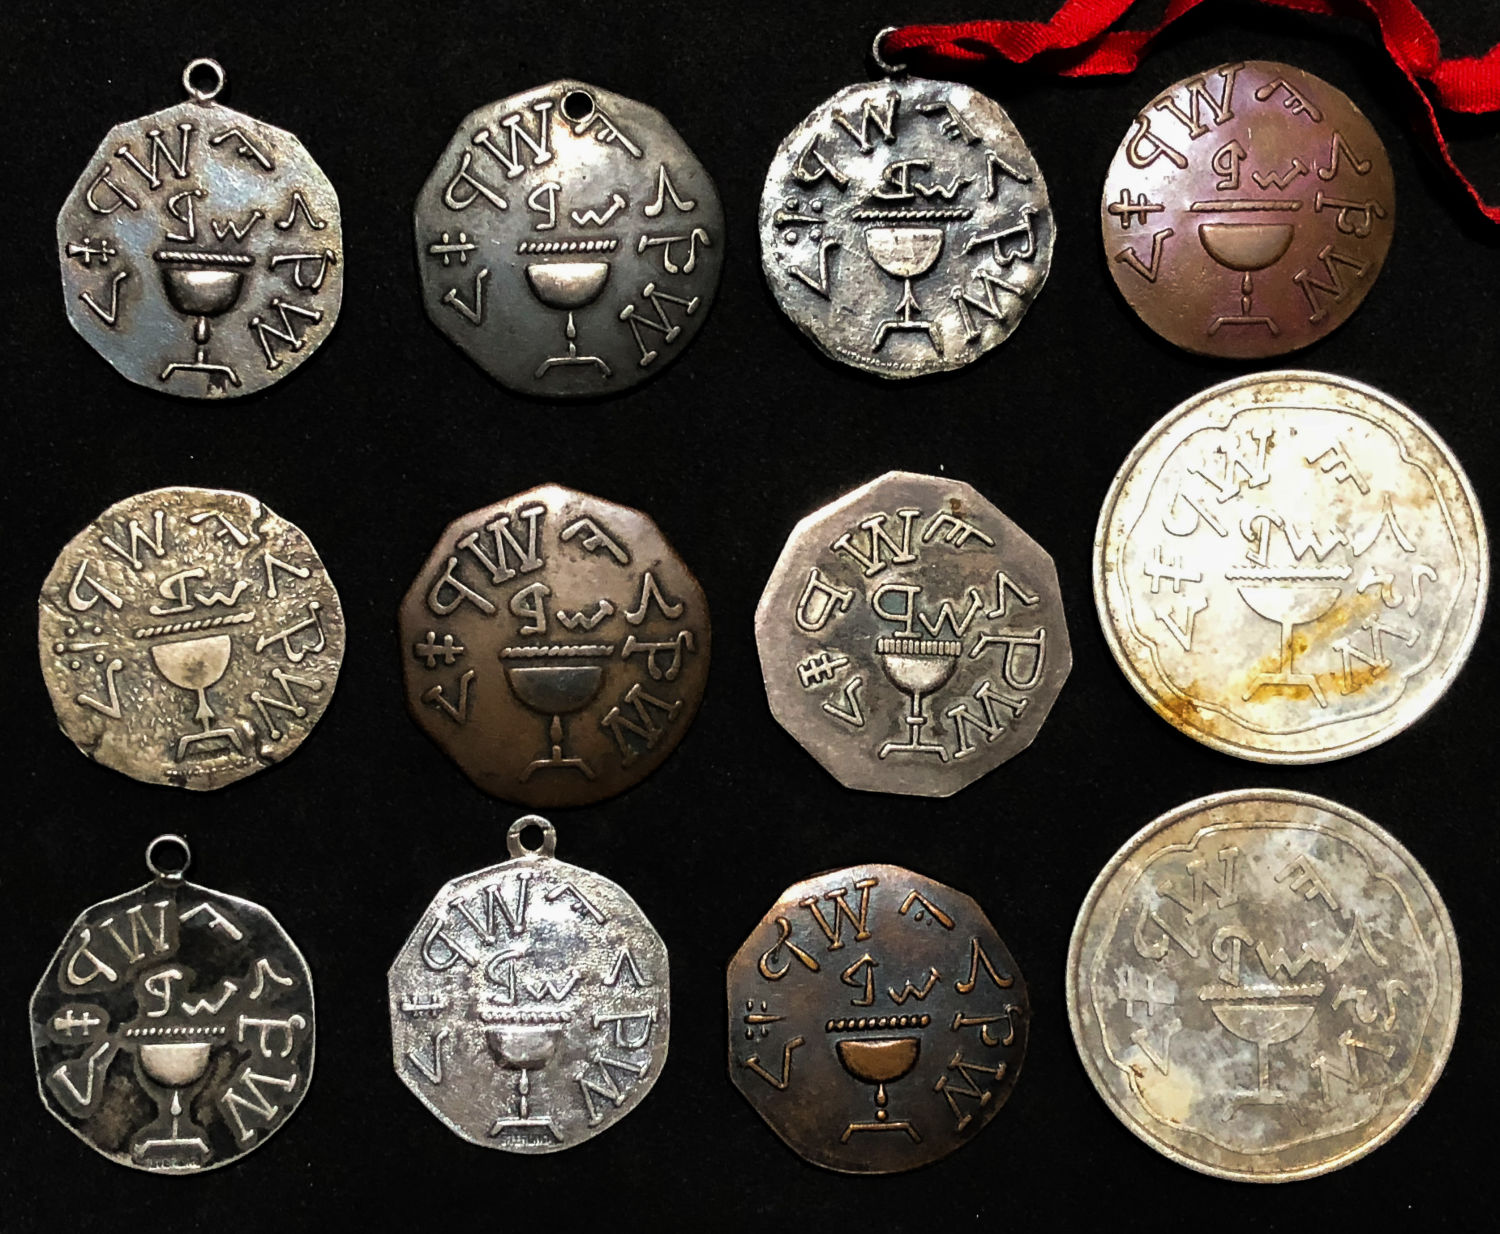 Lot 19 - Medals, Tokens.  -  yigal avrahamy Auction 03 - Coins and Banknotes of Israel and Palestine, medals and tokens.